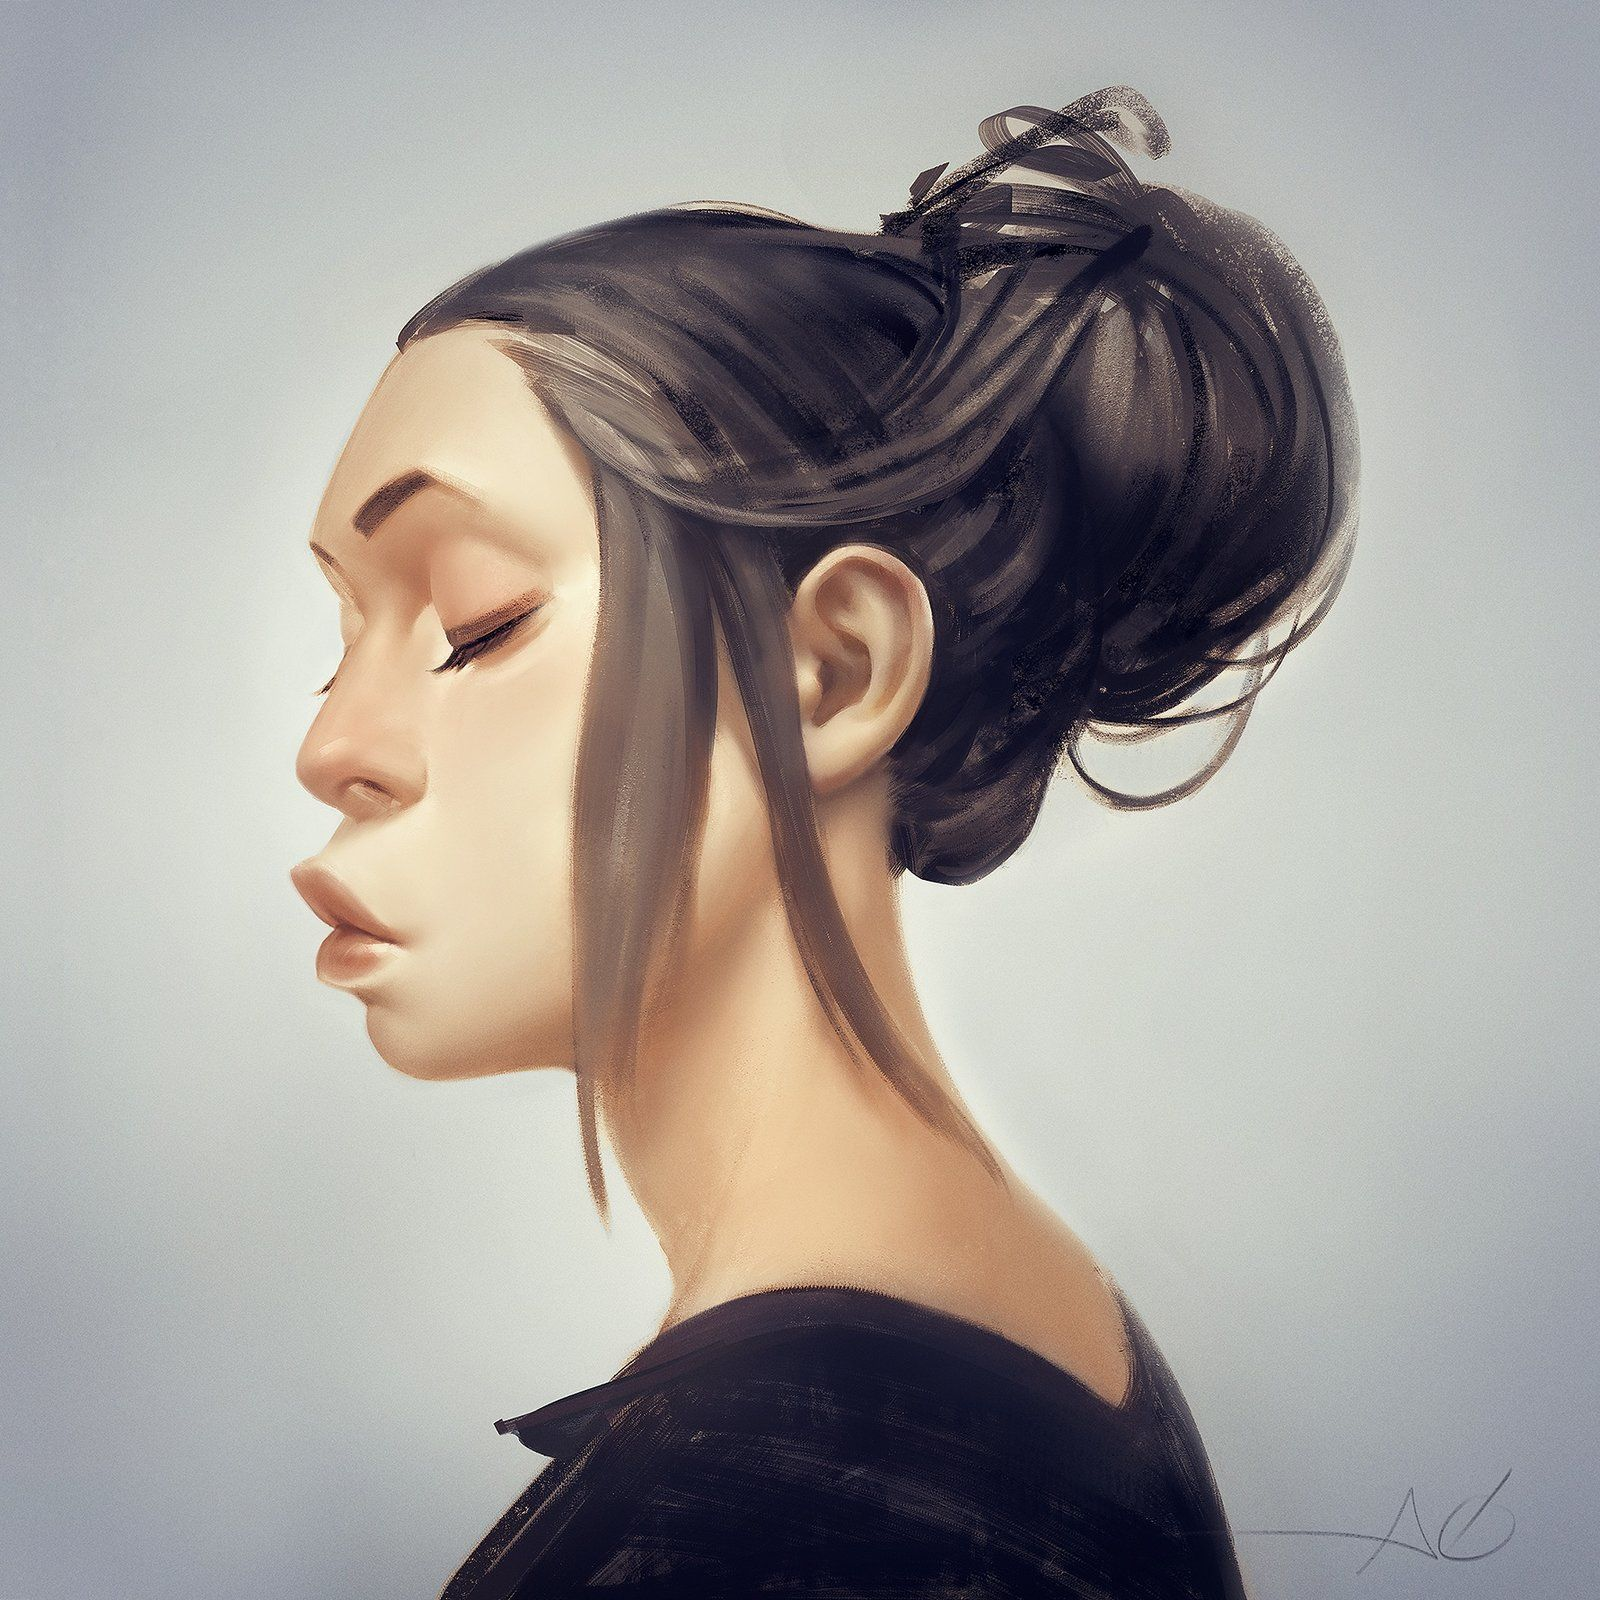 back to imagination portrait, Ayran Oberto on ArtStation at https://www.artstation.com/artwork/back-to-imagination-portrait